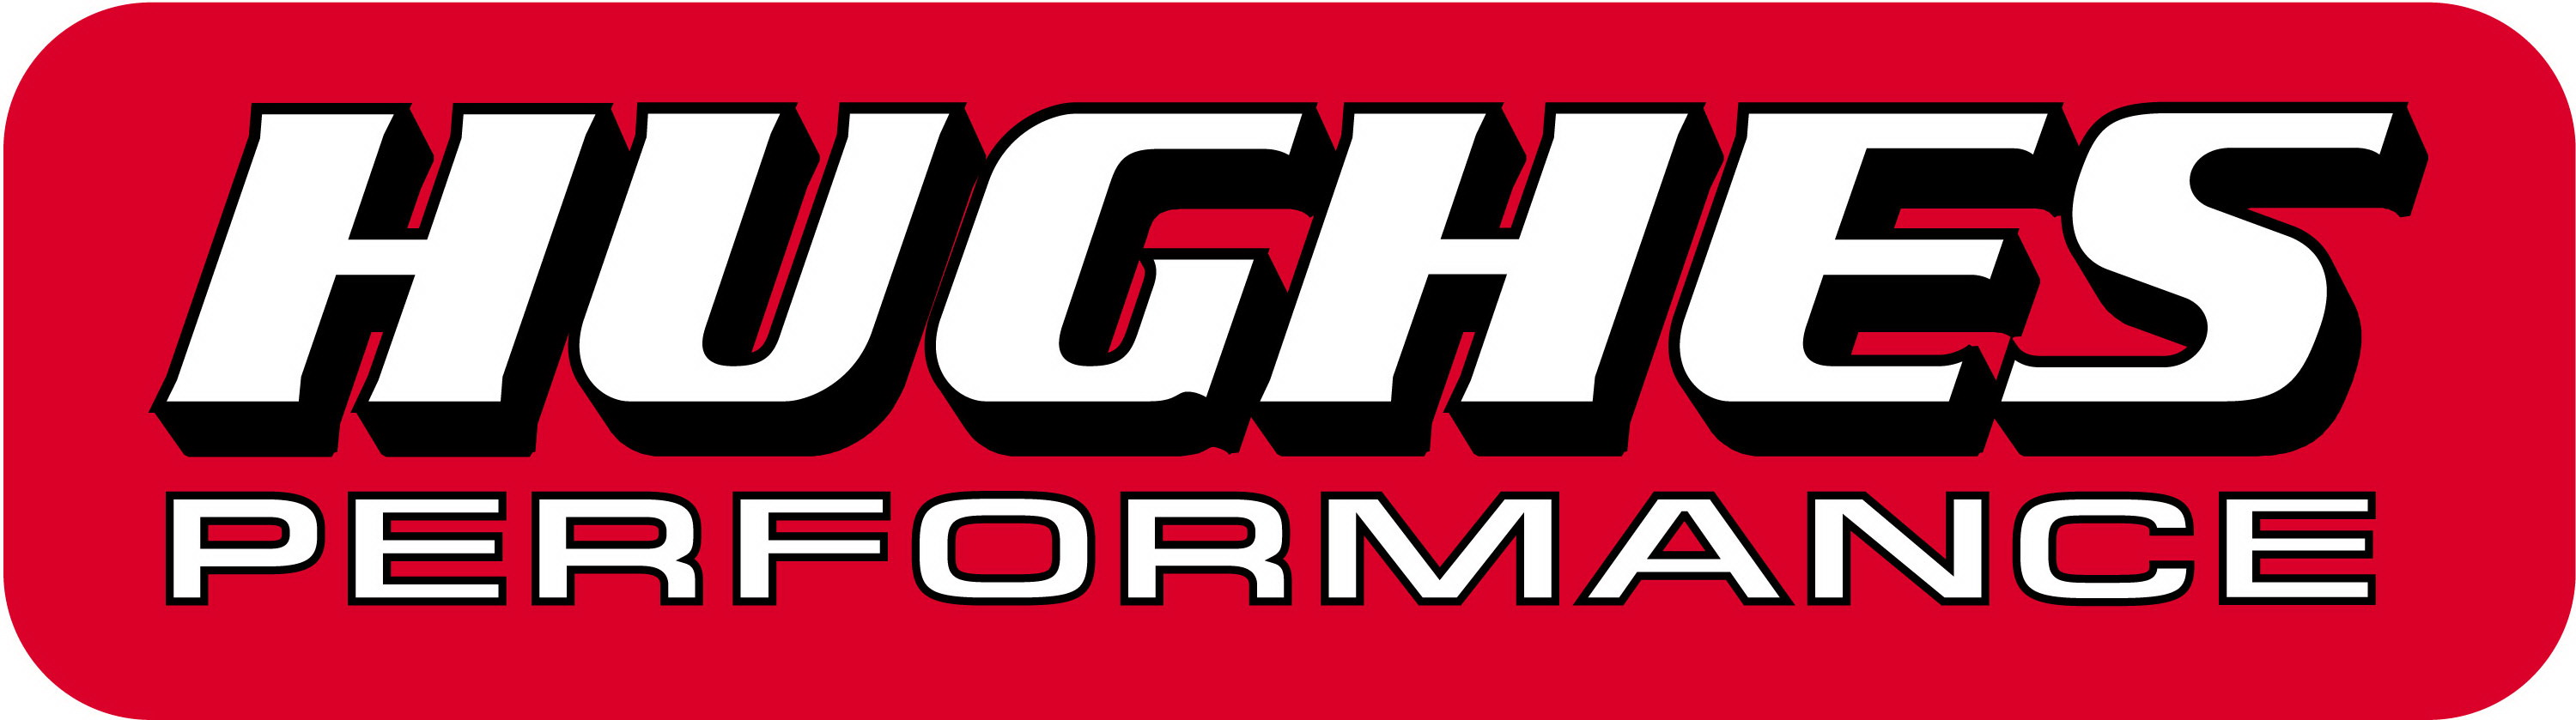 Hughes Performance Continues Sponsorship Of Psca Event